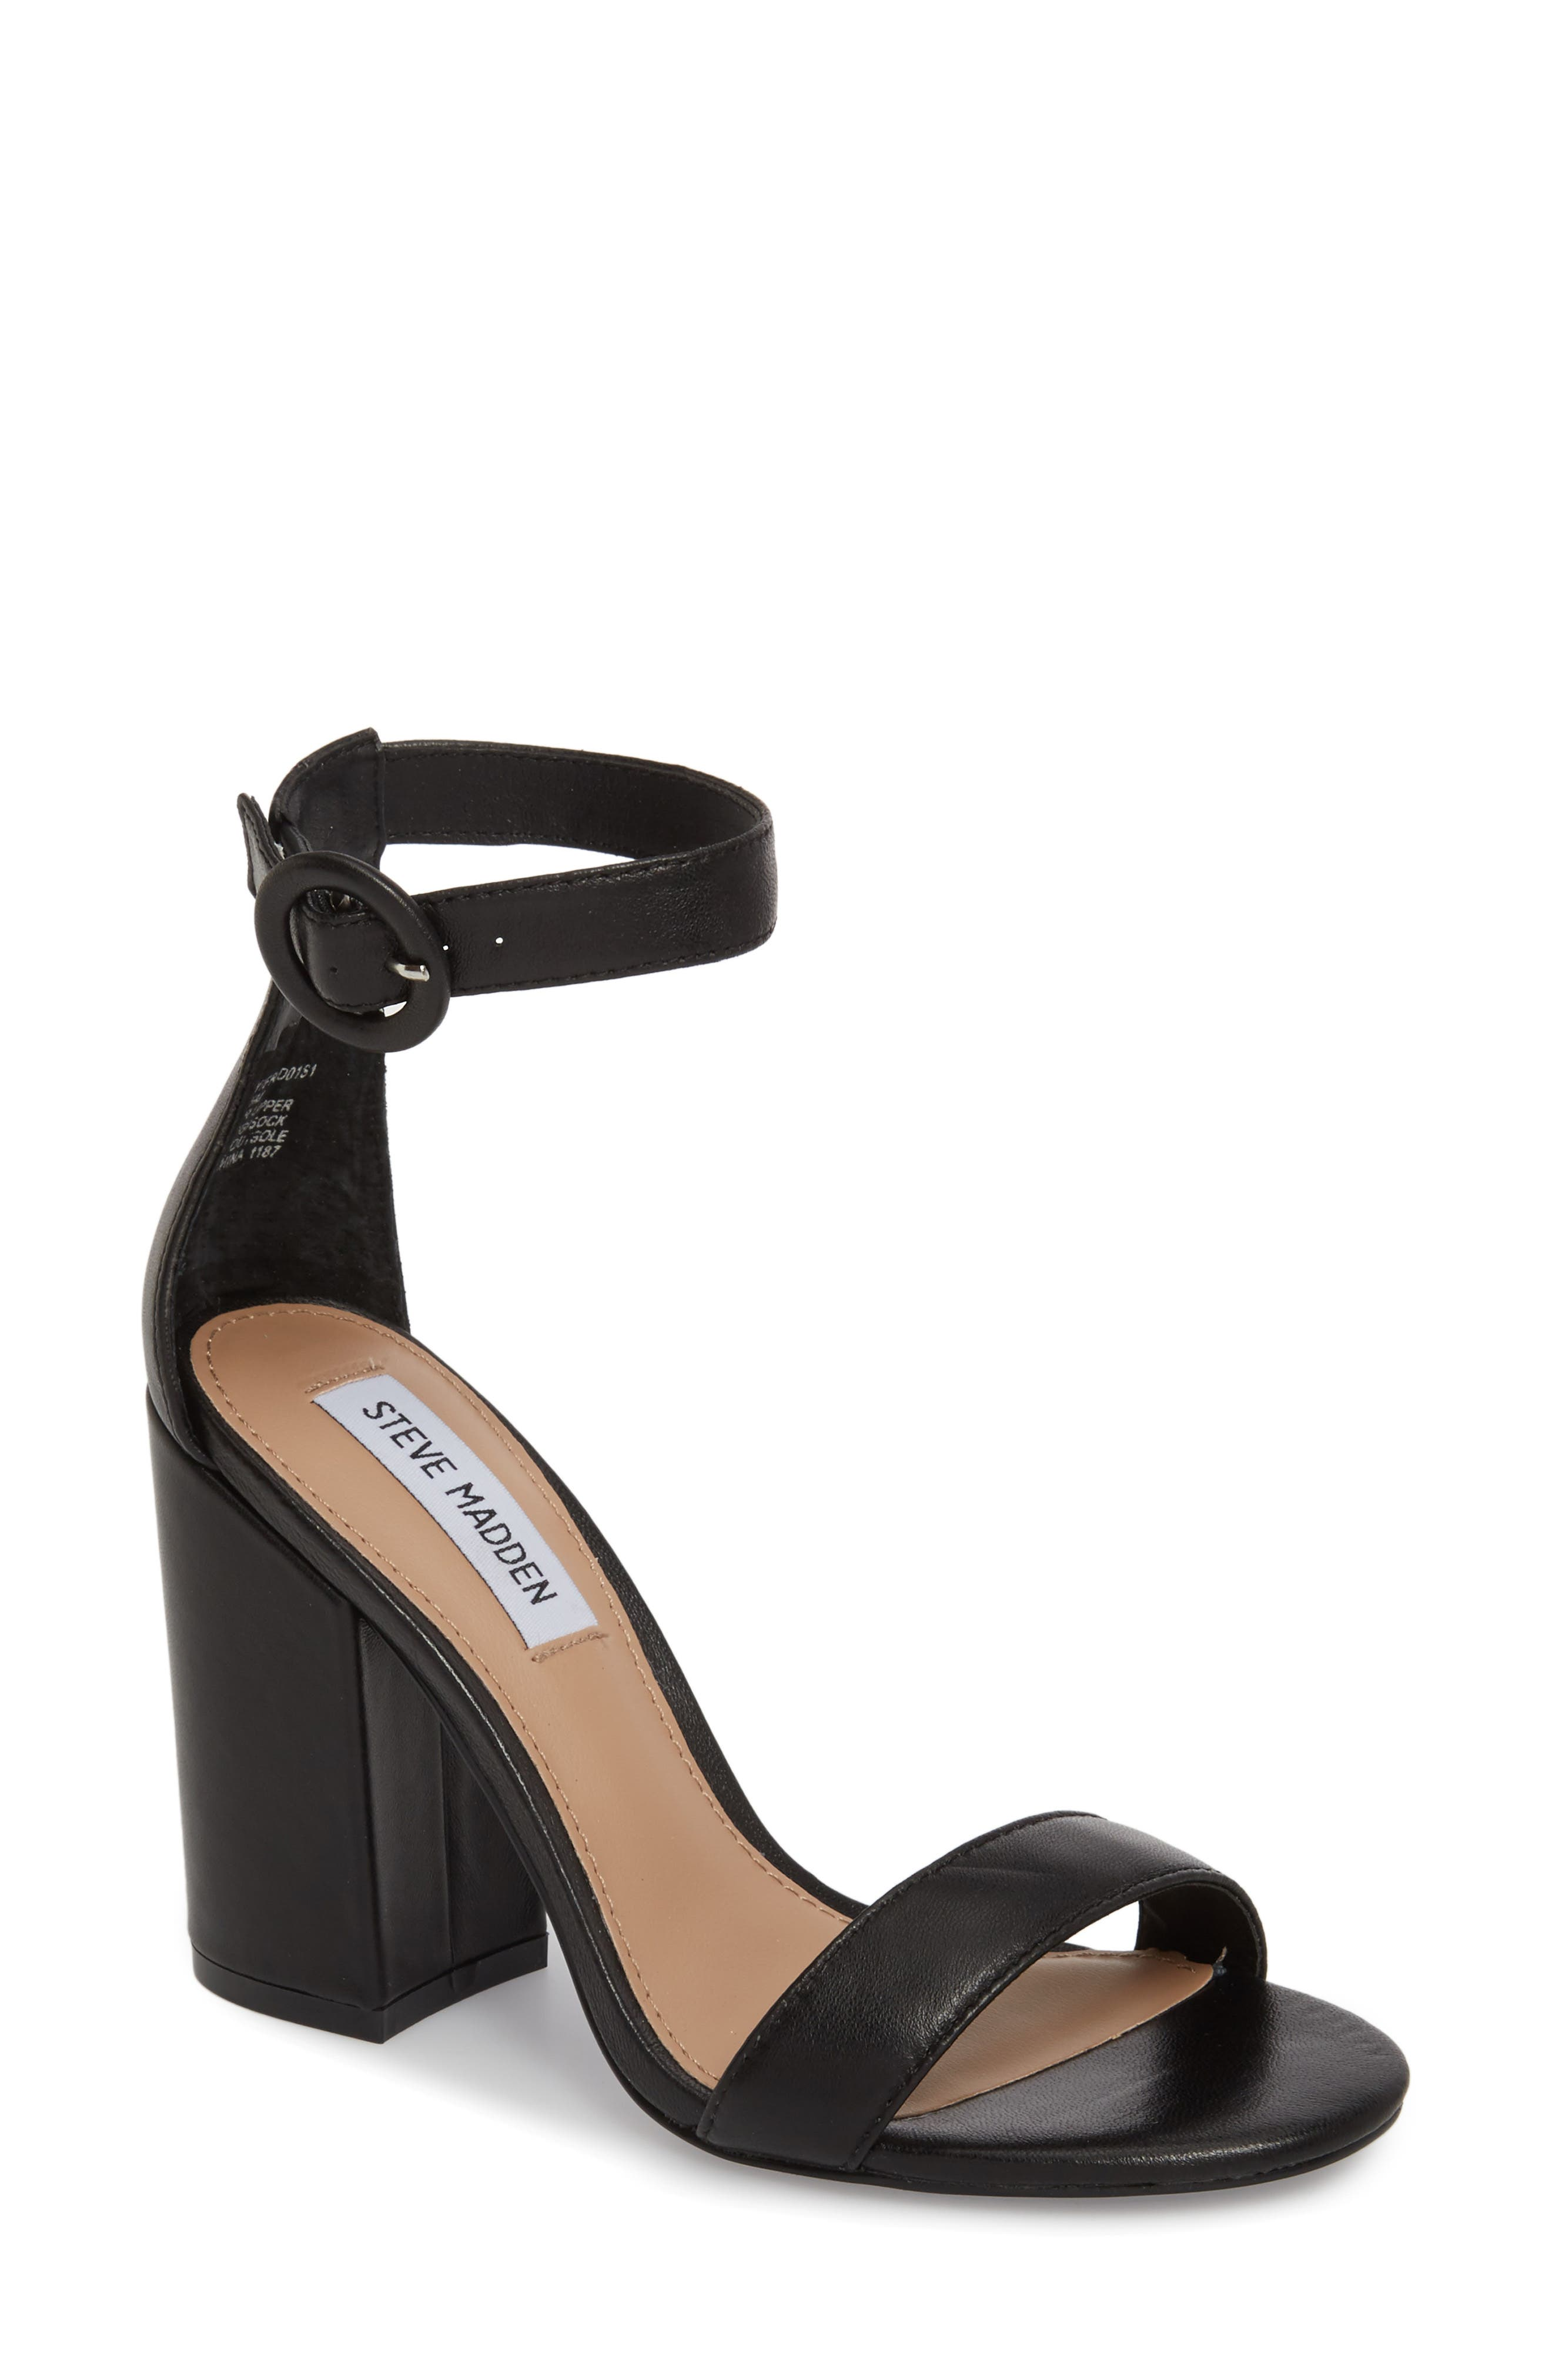 Friday Sandal,                         Main,                         color, Black Leather